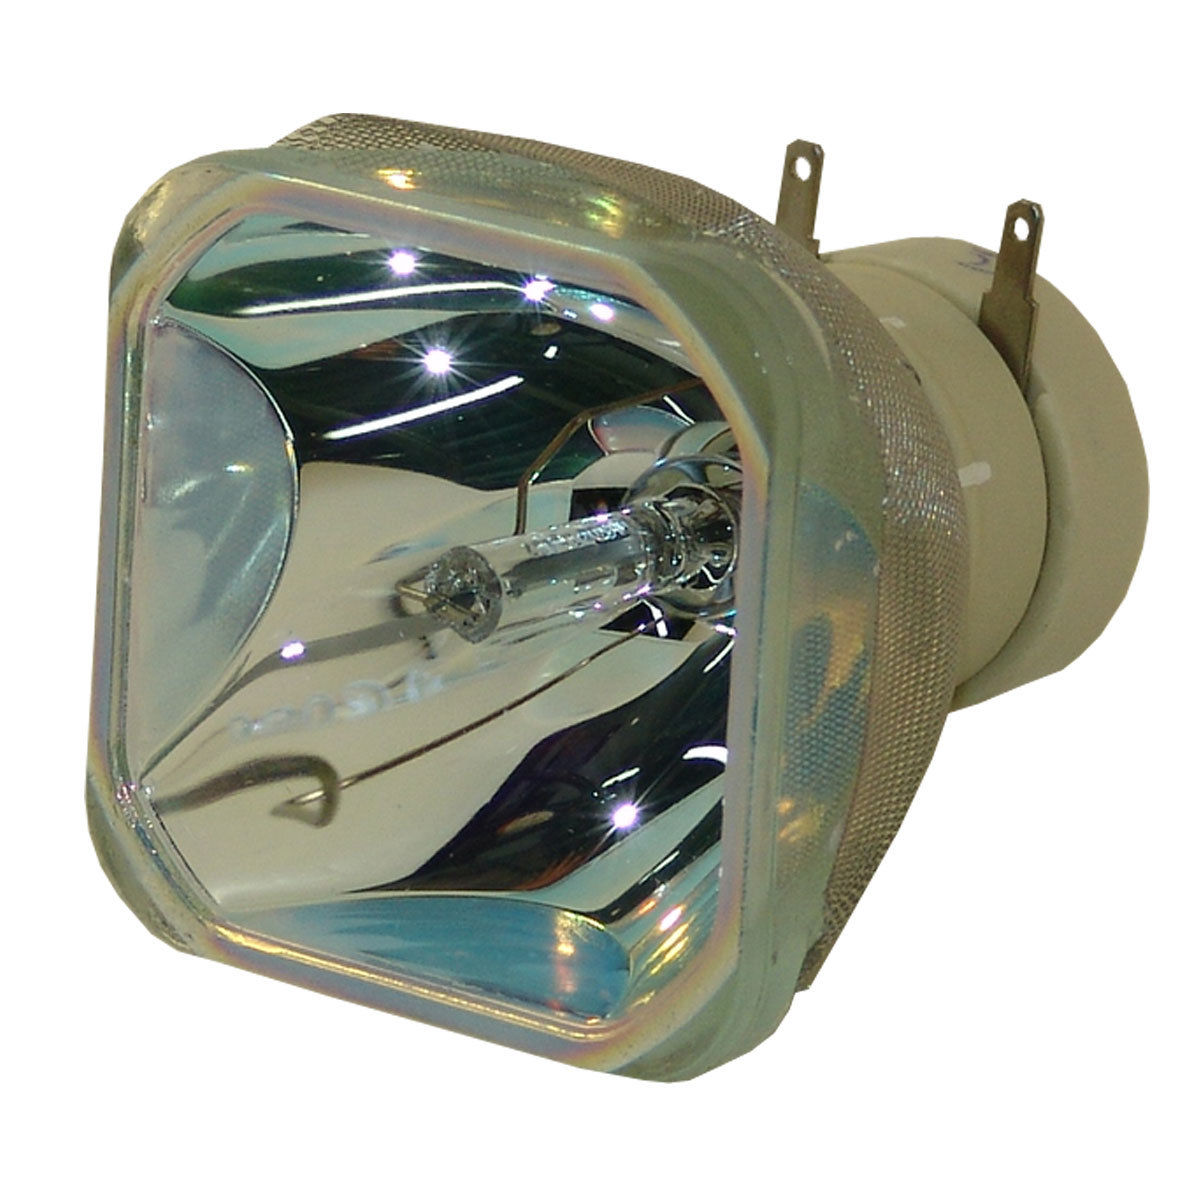 Compatible Bare Bulb 78-6972-0008-3 DT01025 for 3M CL67N/PL92X/WX36/X30/X30N/X31/X35N/X36/X46 Projector Lamp Bulb with housing trumpeter 01025 1 35 russian frog 7 luna m short range rocket system model kits